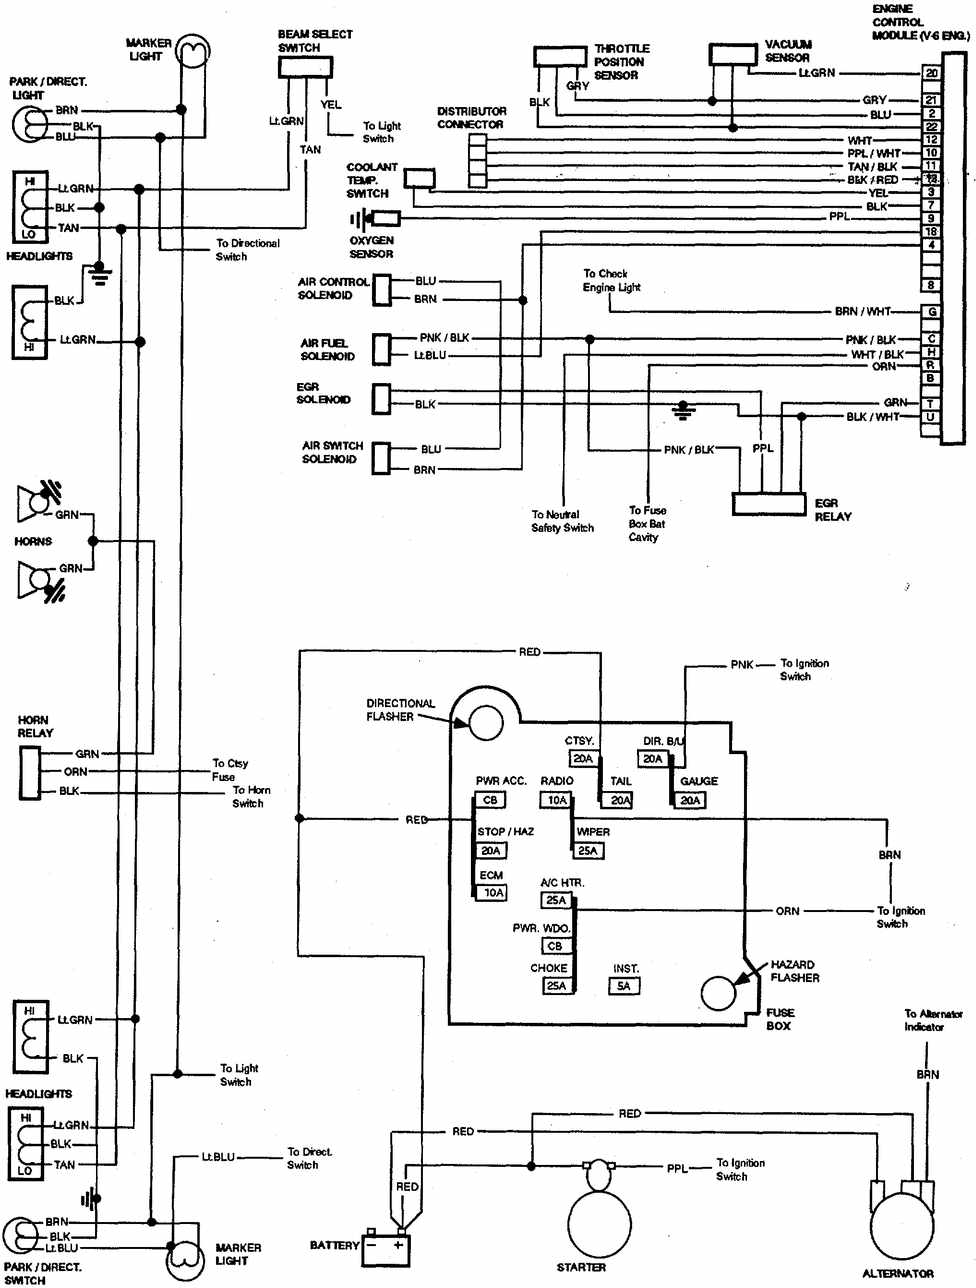 89 Corvette Ecm Pinout Auto Electrical Wiring Diagram 1998 Firebird Gm Chevrolet V8 Trucks 1981